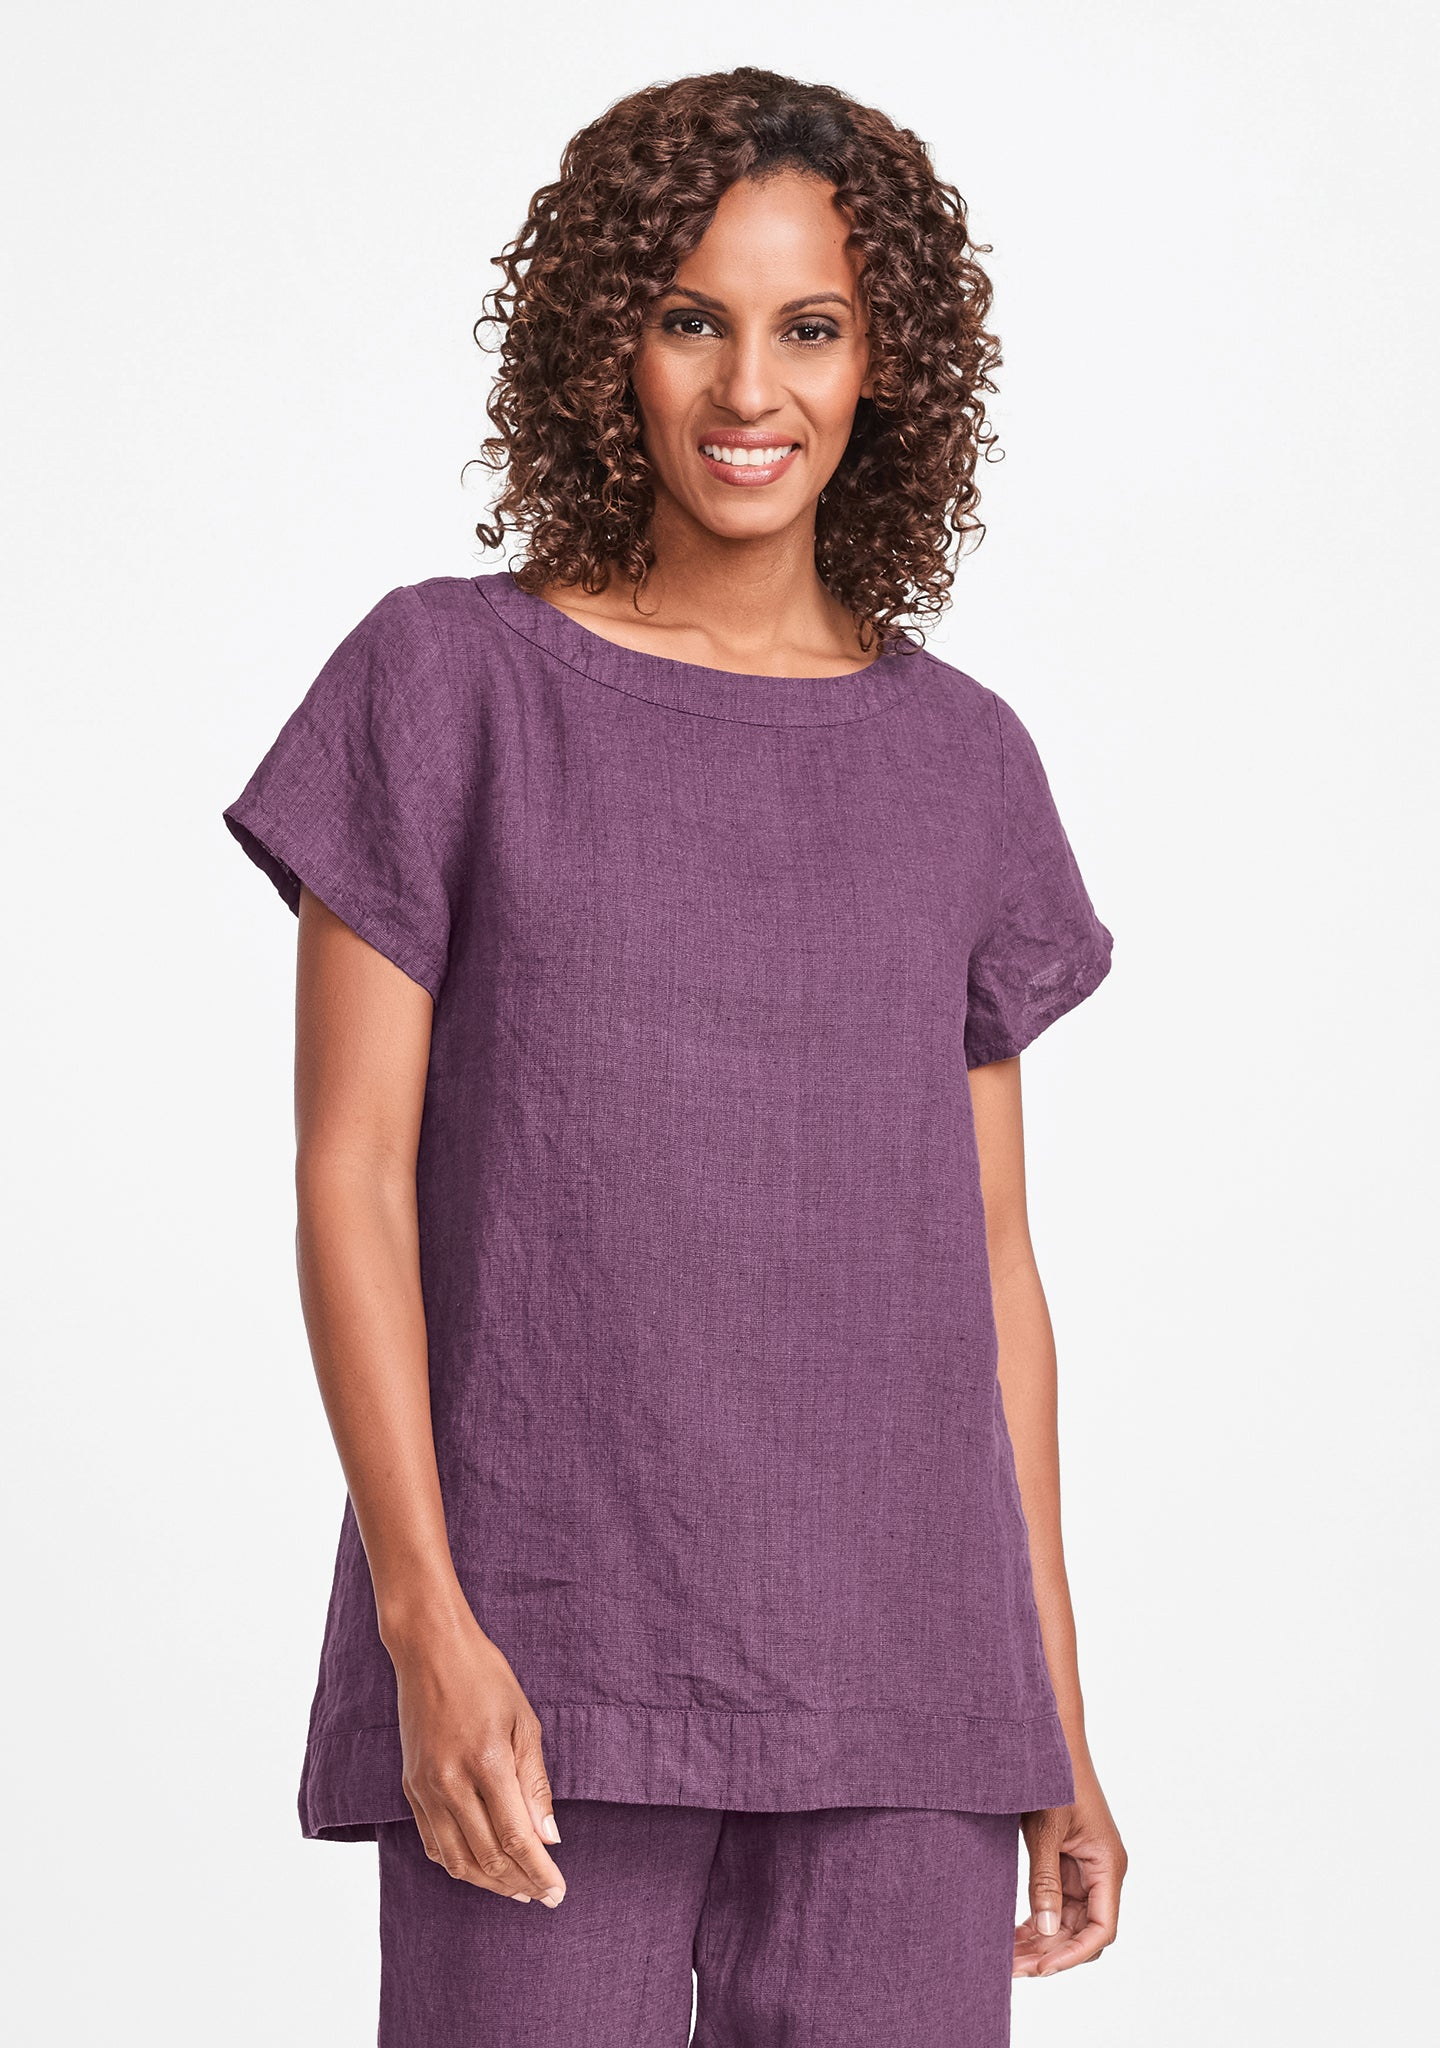 elite top linen t shirt purple